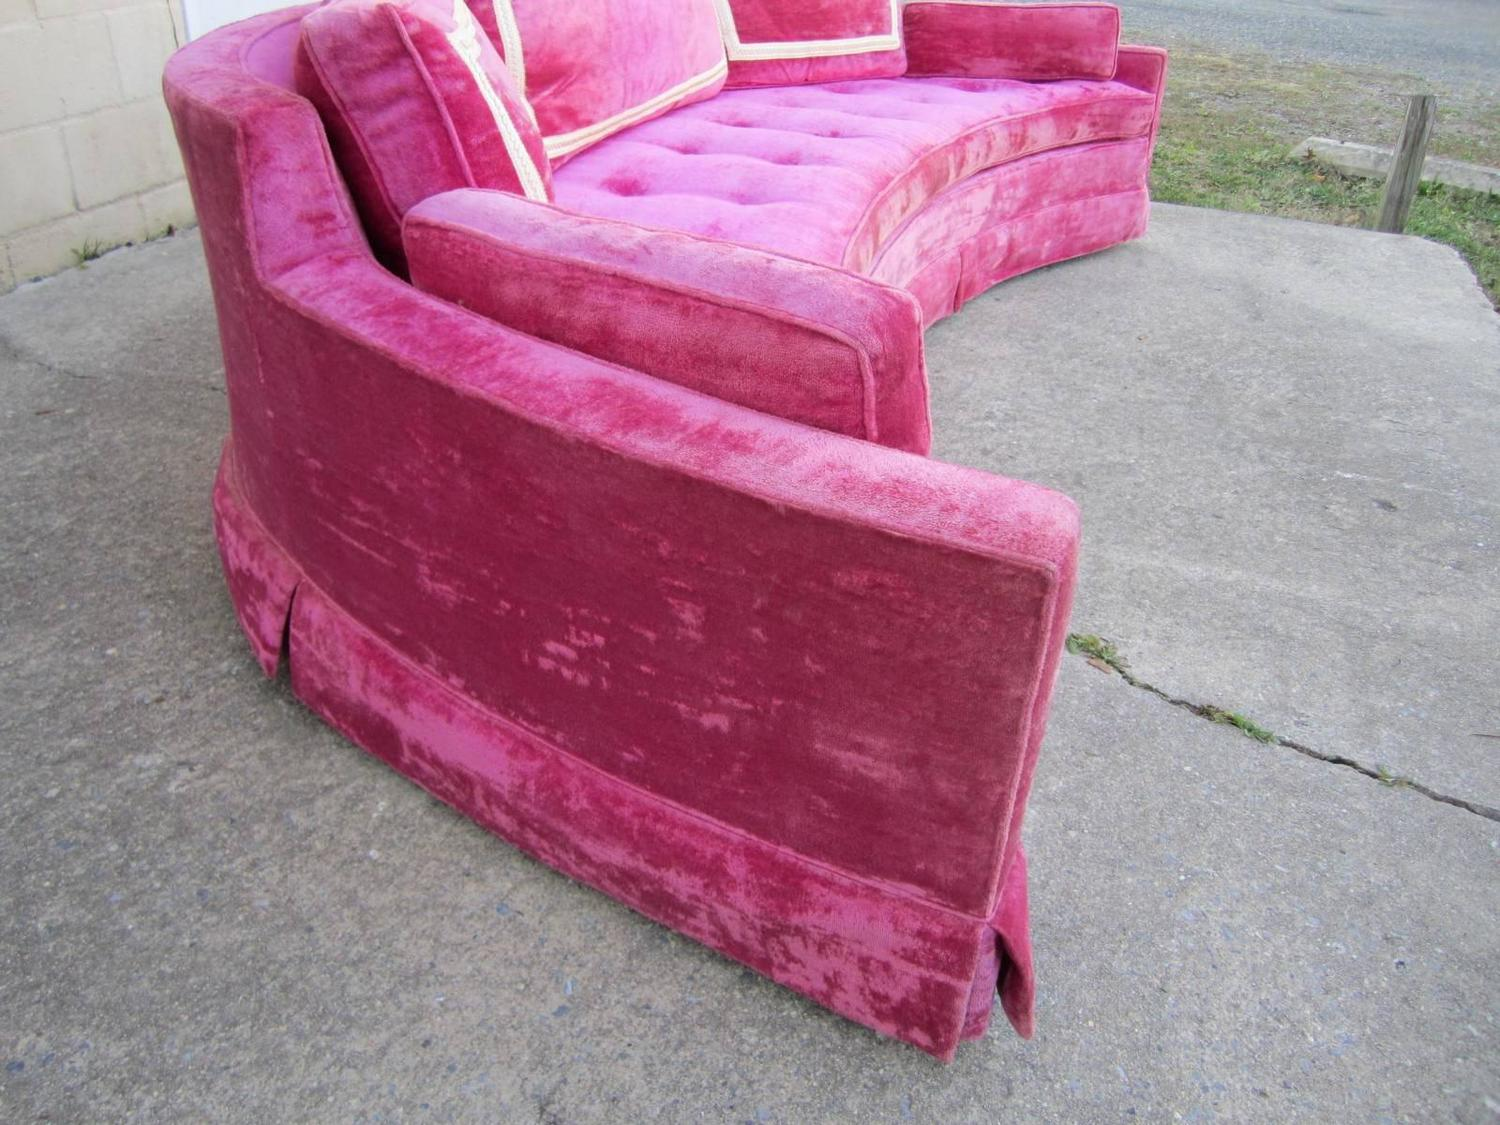 28 pink sofas for sale vintage danish pink sofa for sale at